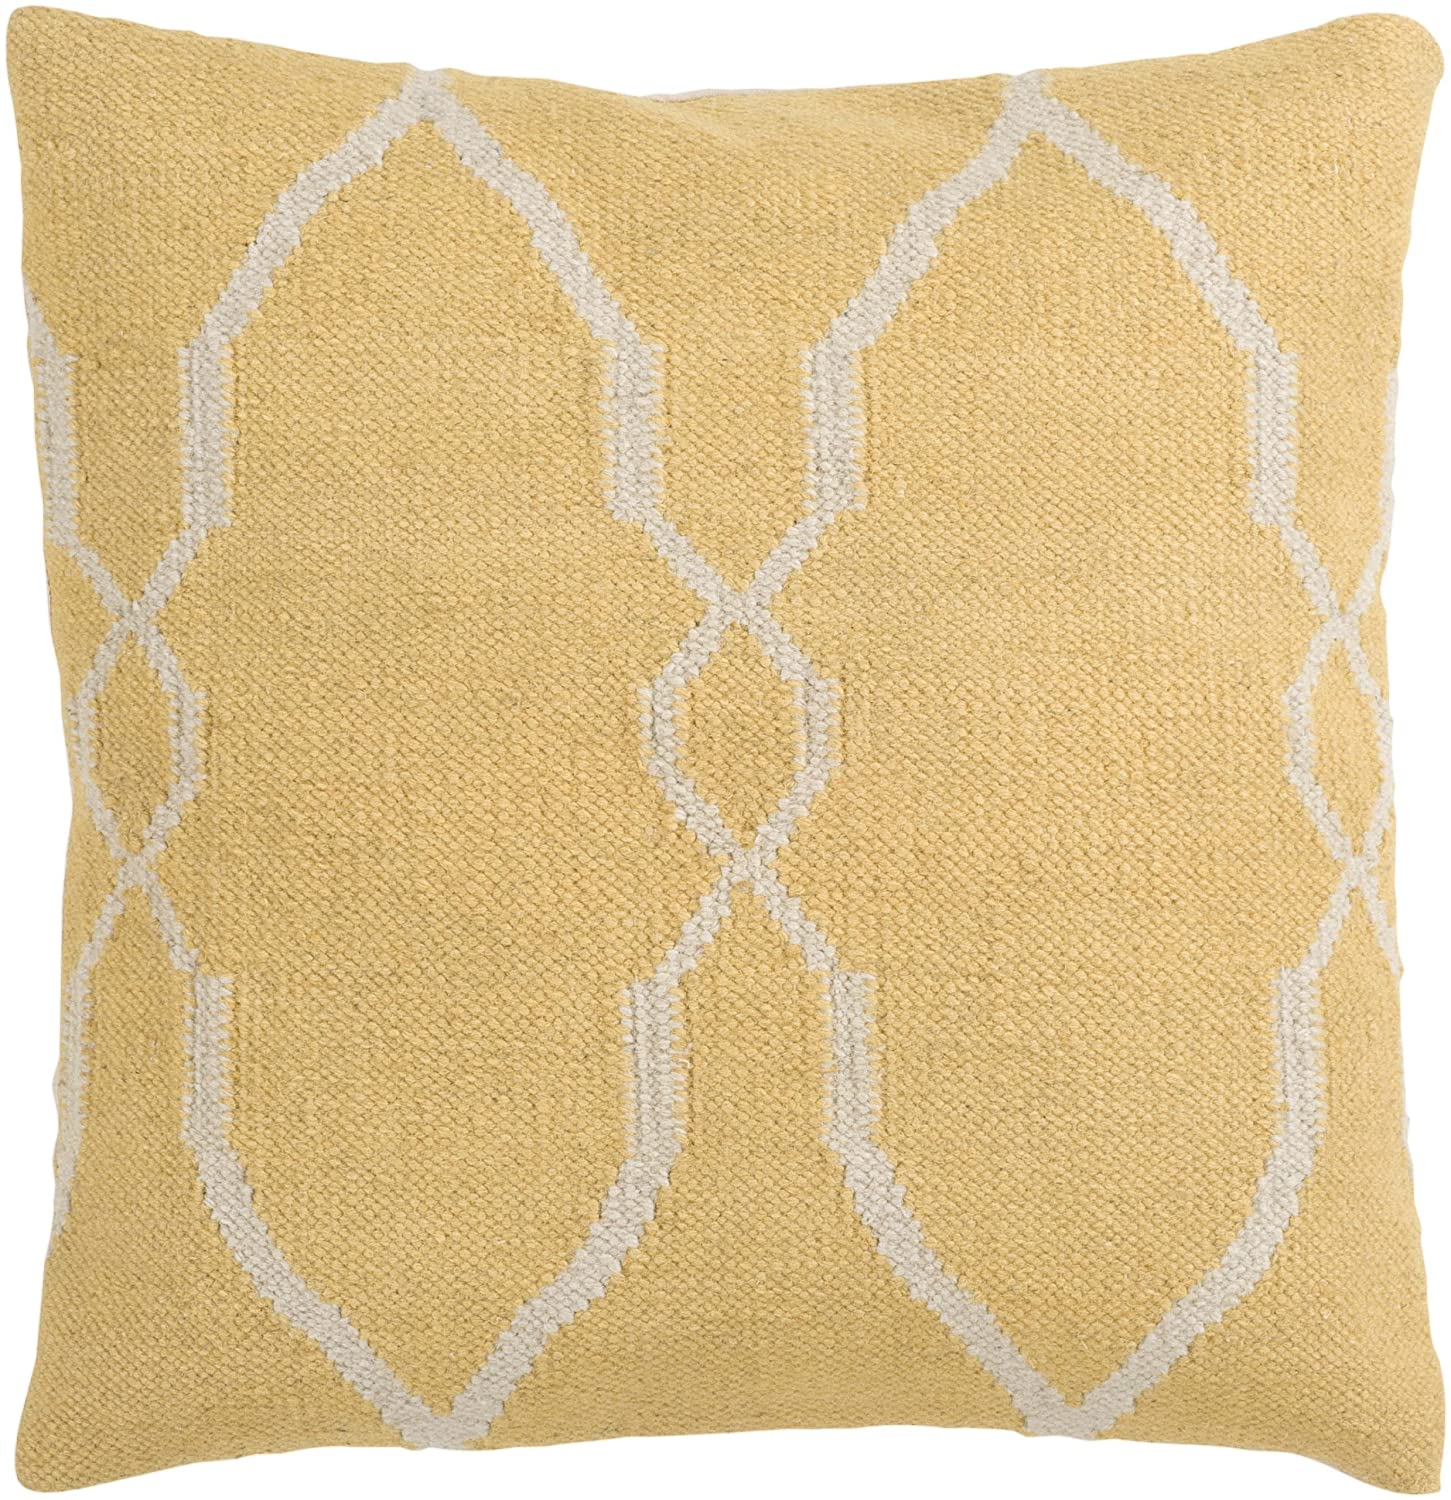 Surya FA-017 Hand Crafted 80% Wool / 20% Cotton Yellow 18 x 18 Geometric Decorative Pillow